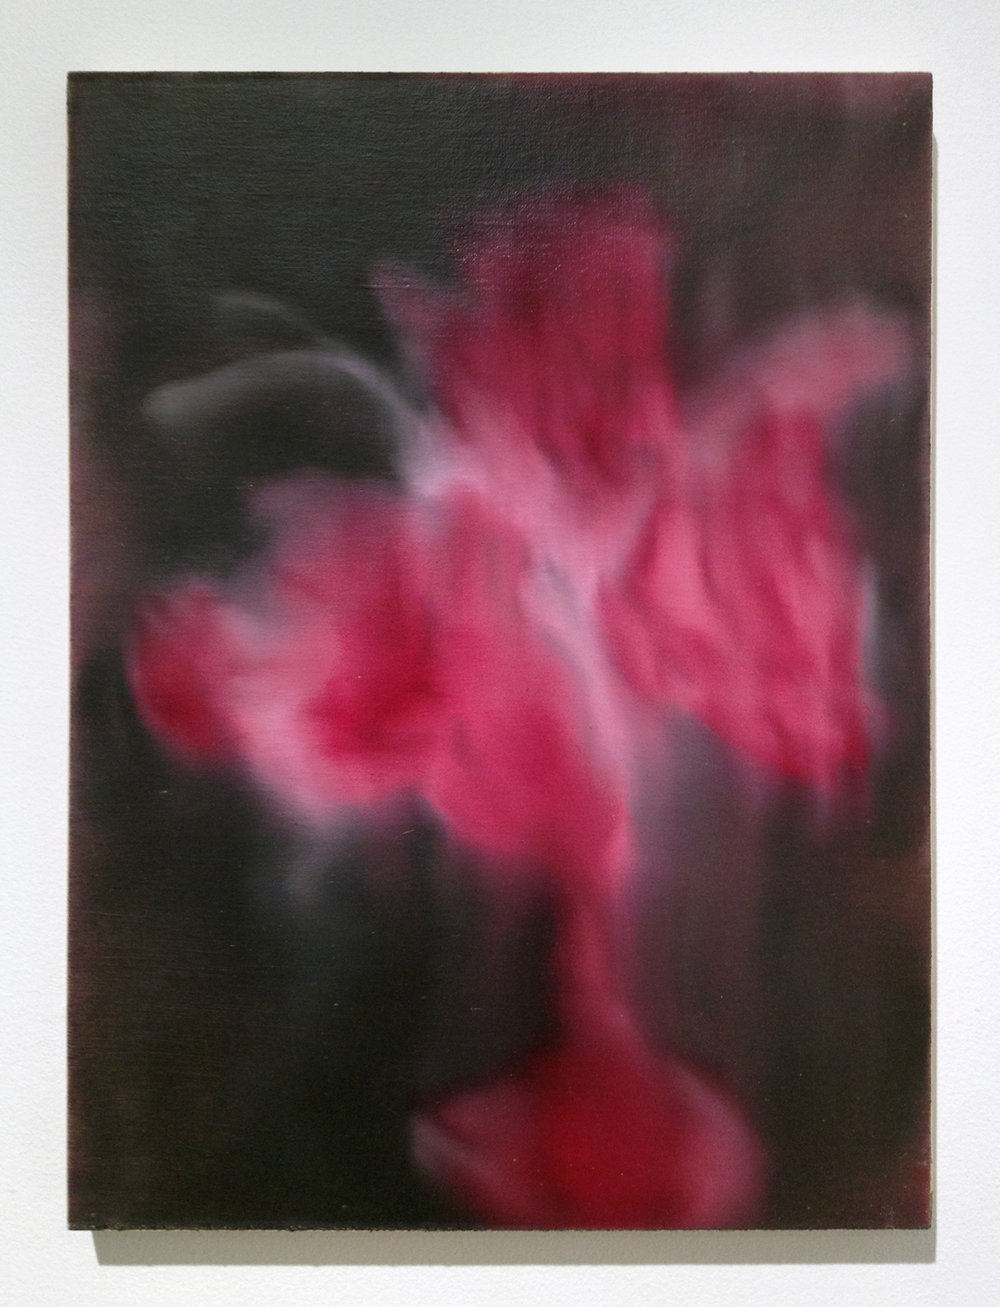 Wedding Bouquet (8) , 2013 – 2014 oil paint on linen, mounted to wood panel 16 x 12 x 1 inches